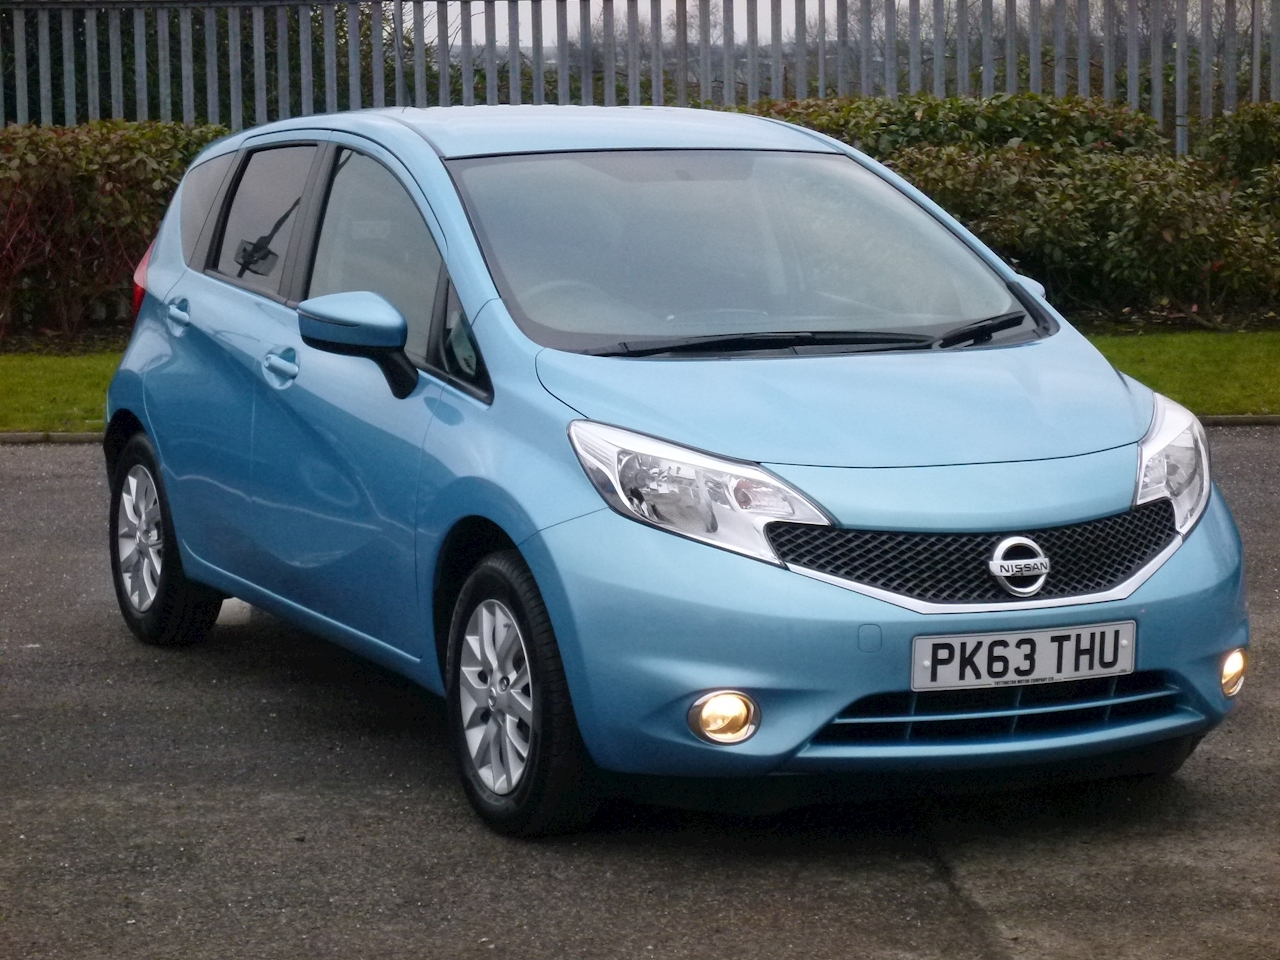 used nissan note acenta new shape tottington motor company ltd forecourt. Black Bedroom Furniture Sets. Home Design Ideas